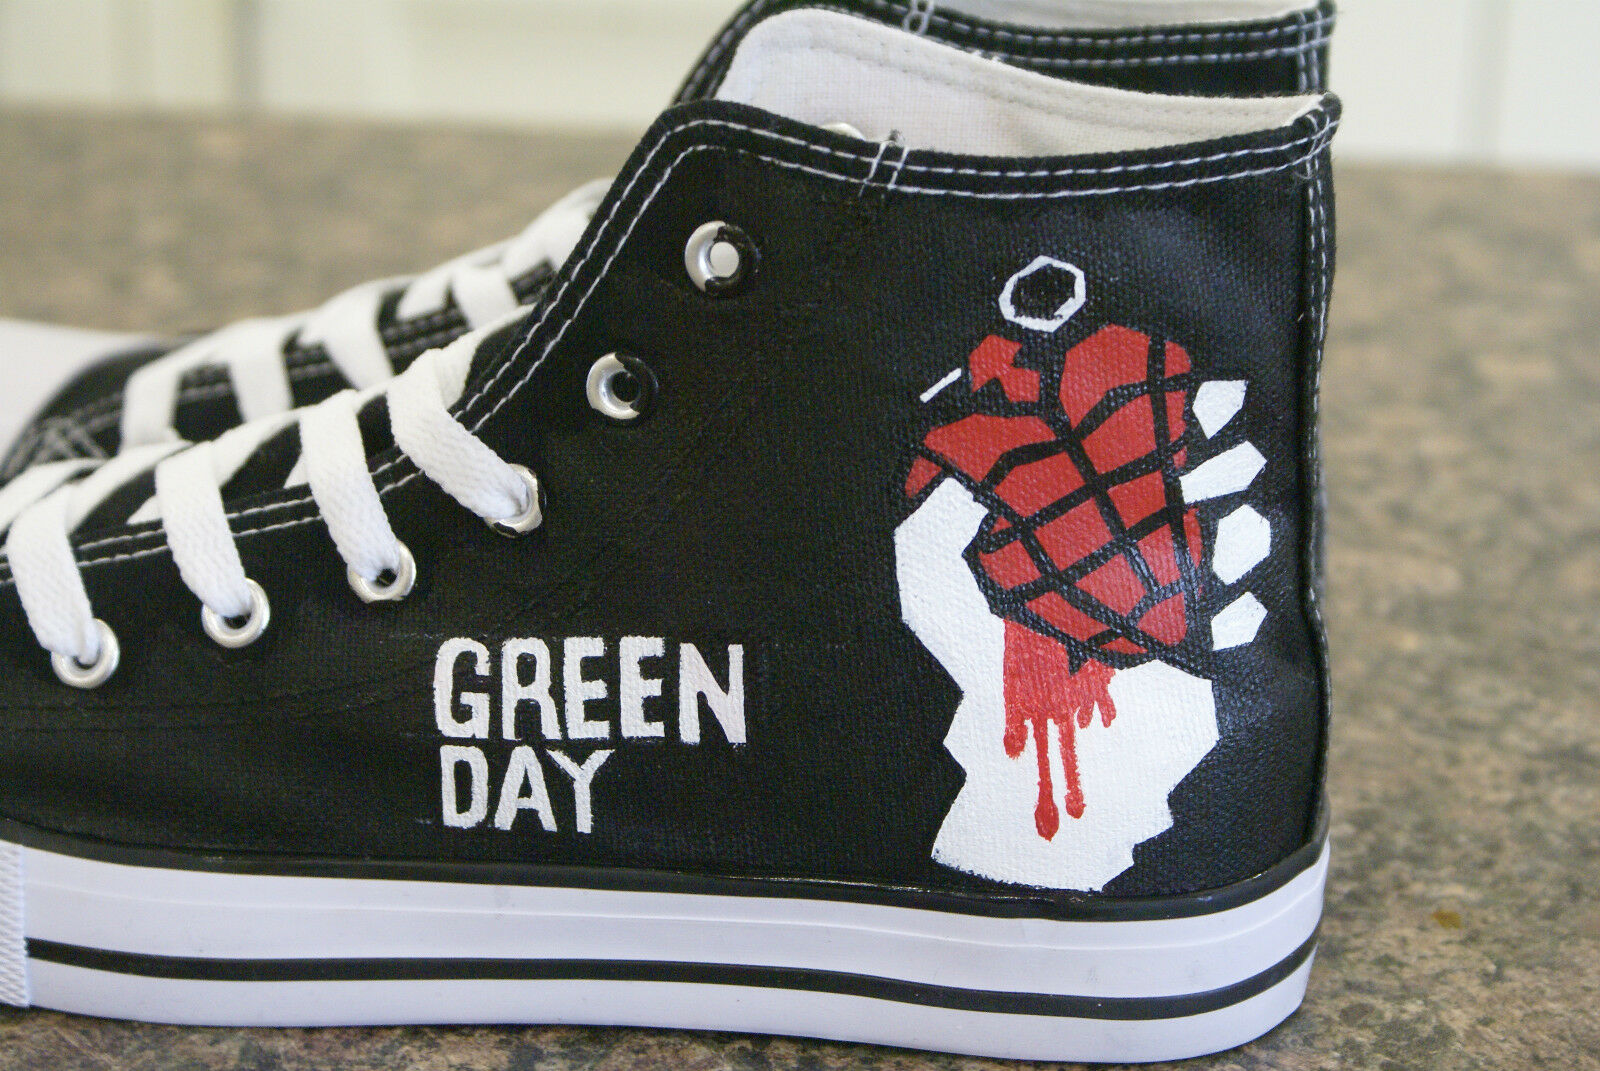 Grün day,inspiROT  hand made painted canvas high tops made hand to order new in box 85ac25